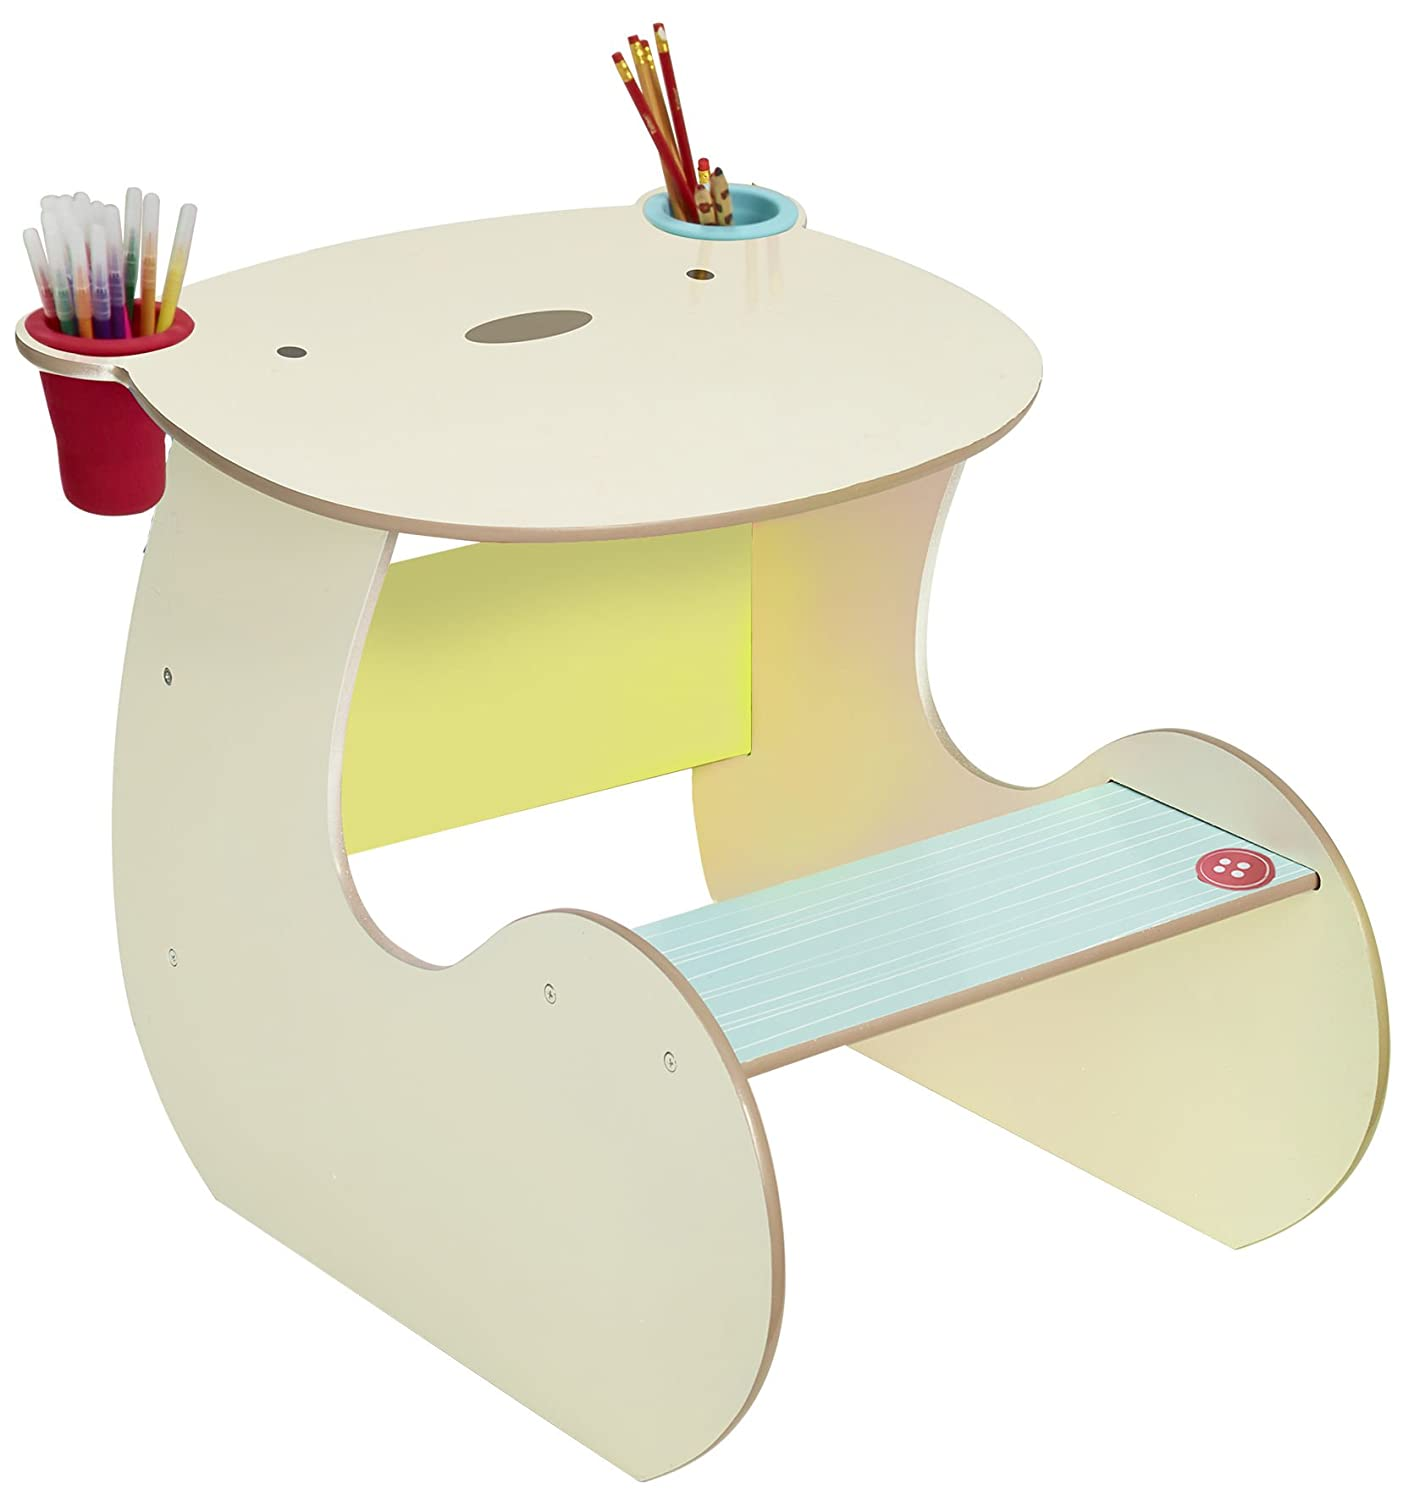 BearHug Childs Craft Desk - Kids Table and Stool by HelloHome Worlds Apart 517SNG01E